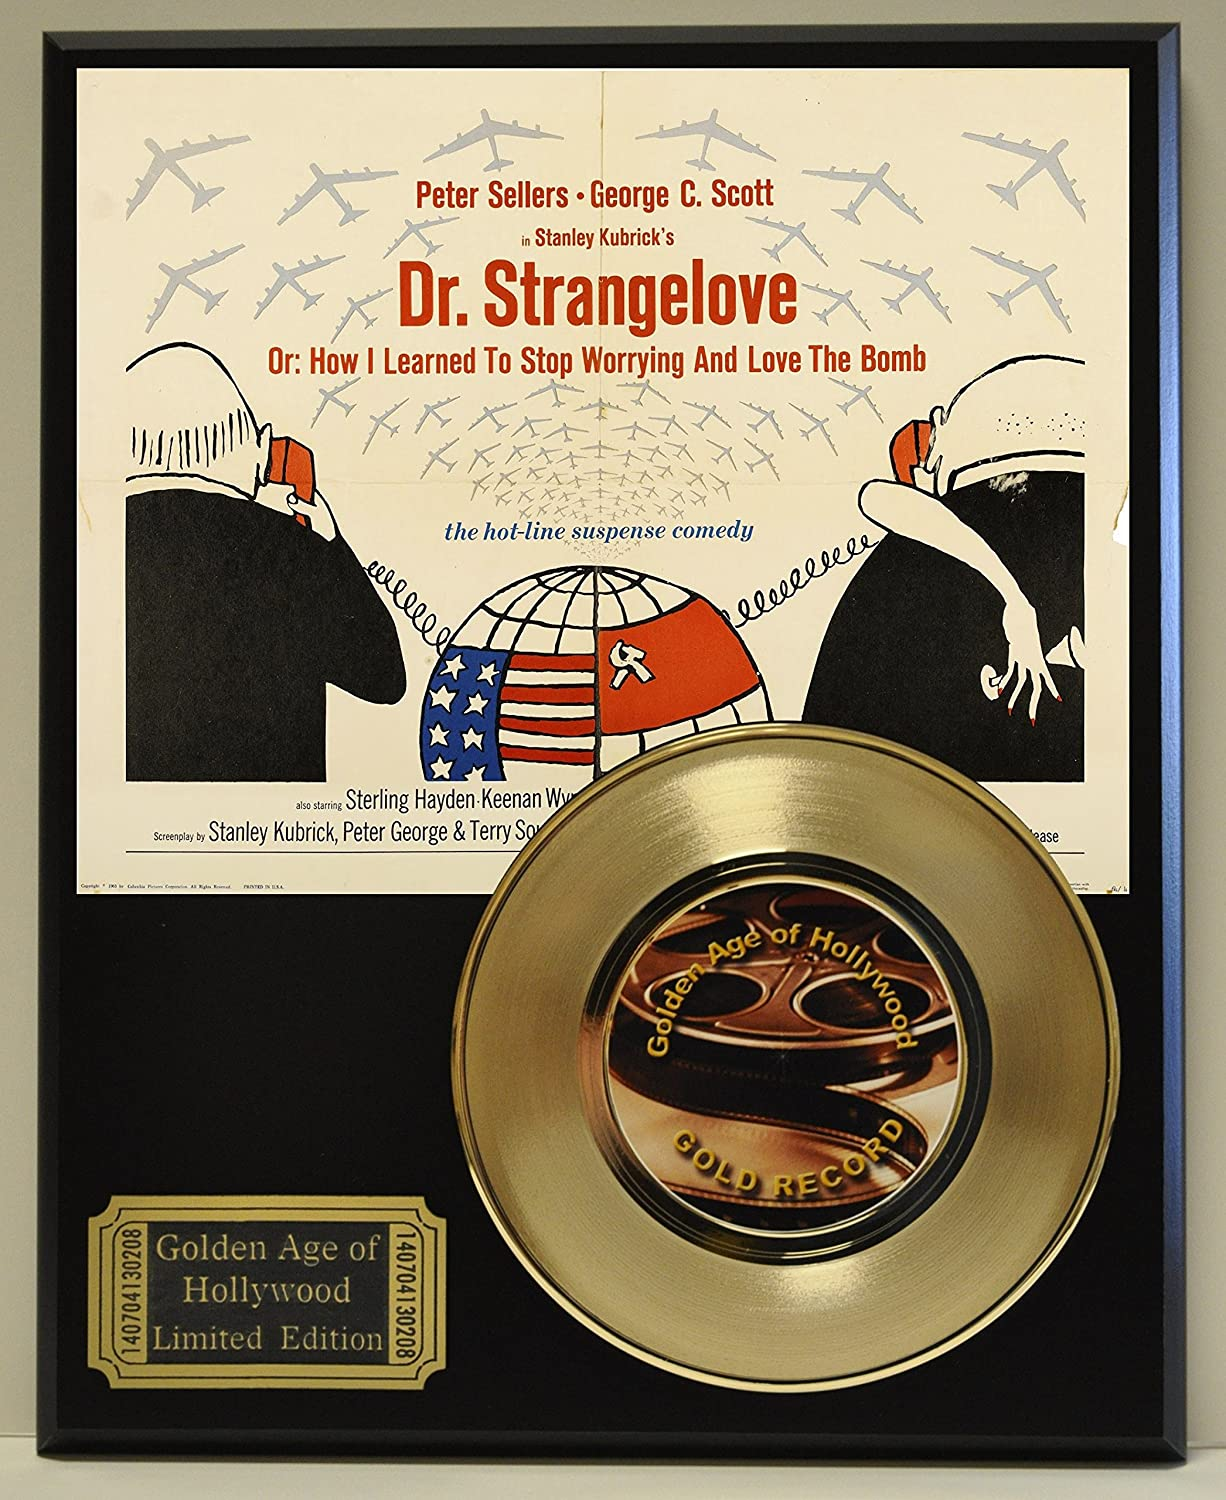 Dr Strangelove Limited Edition Gold 45 Record Display. Only 500 made. Limited quanities. FREE US SHIPPING Classic Rock Collectibles